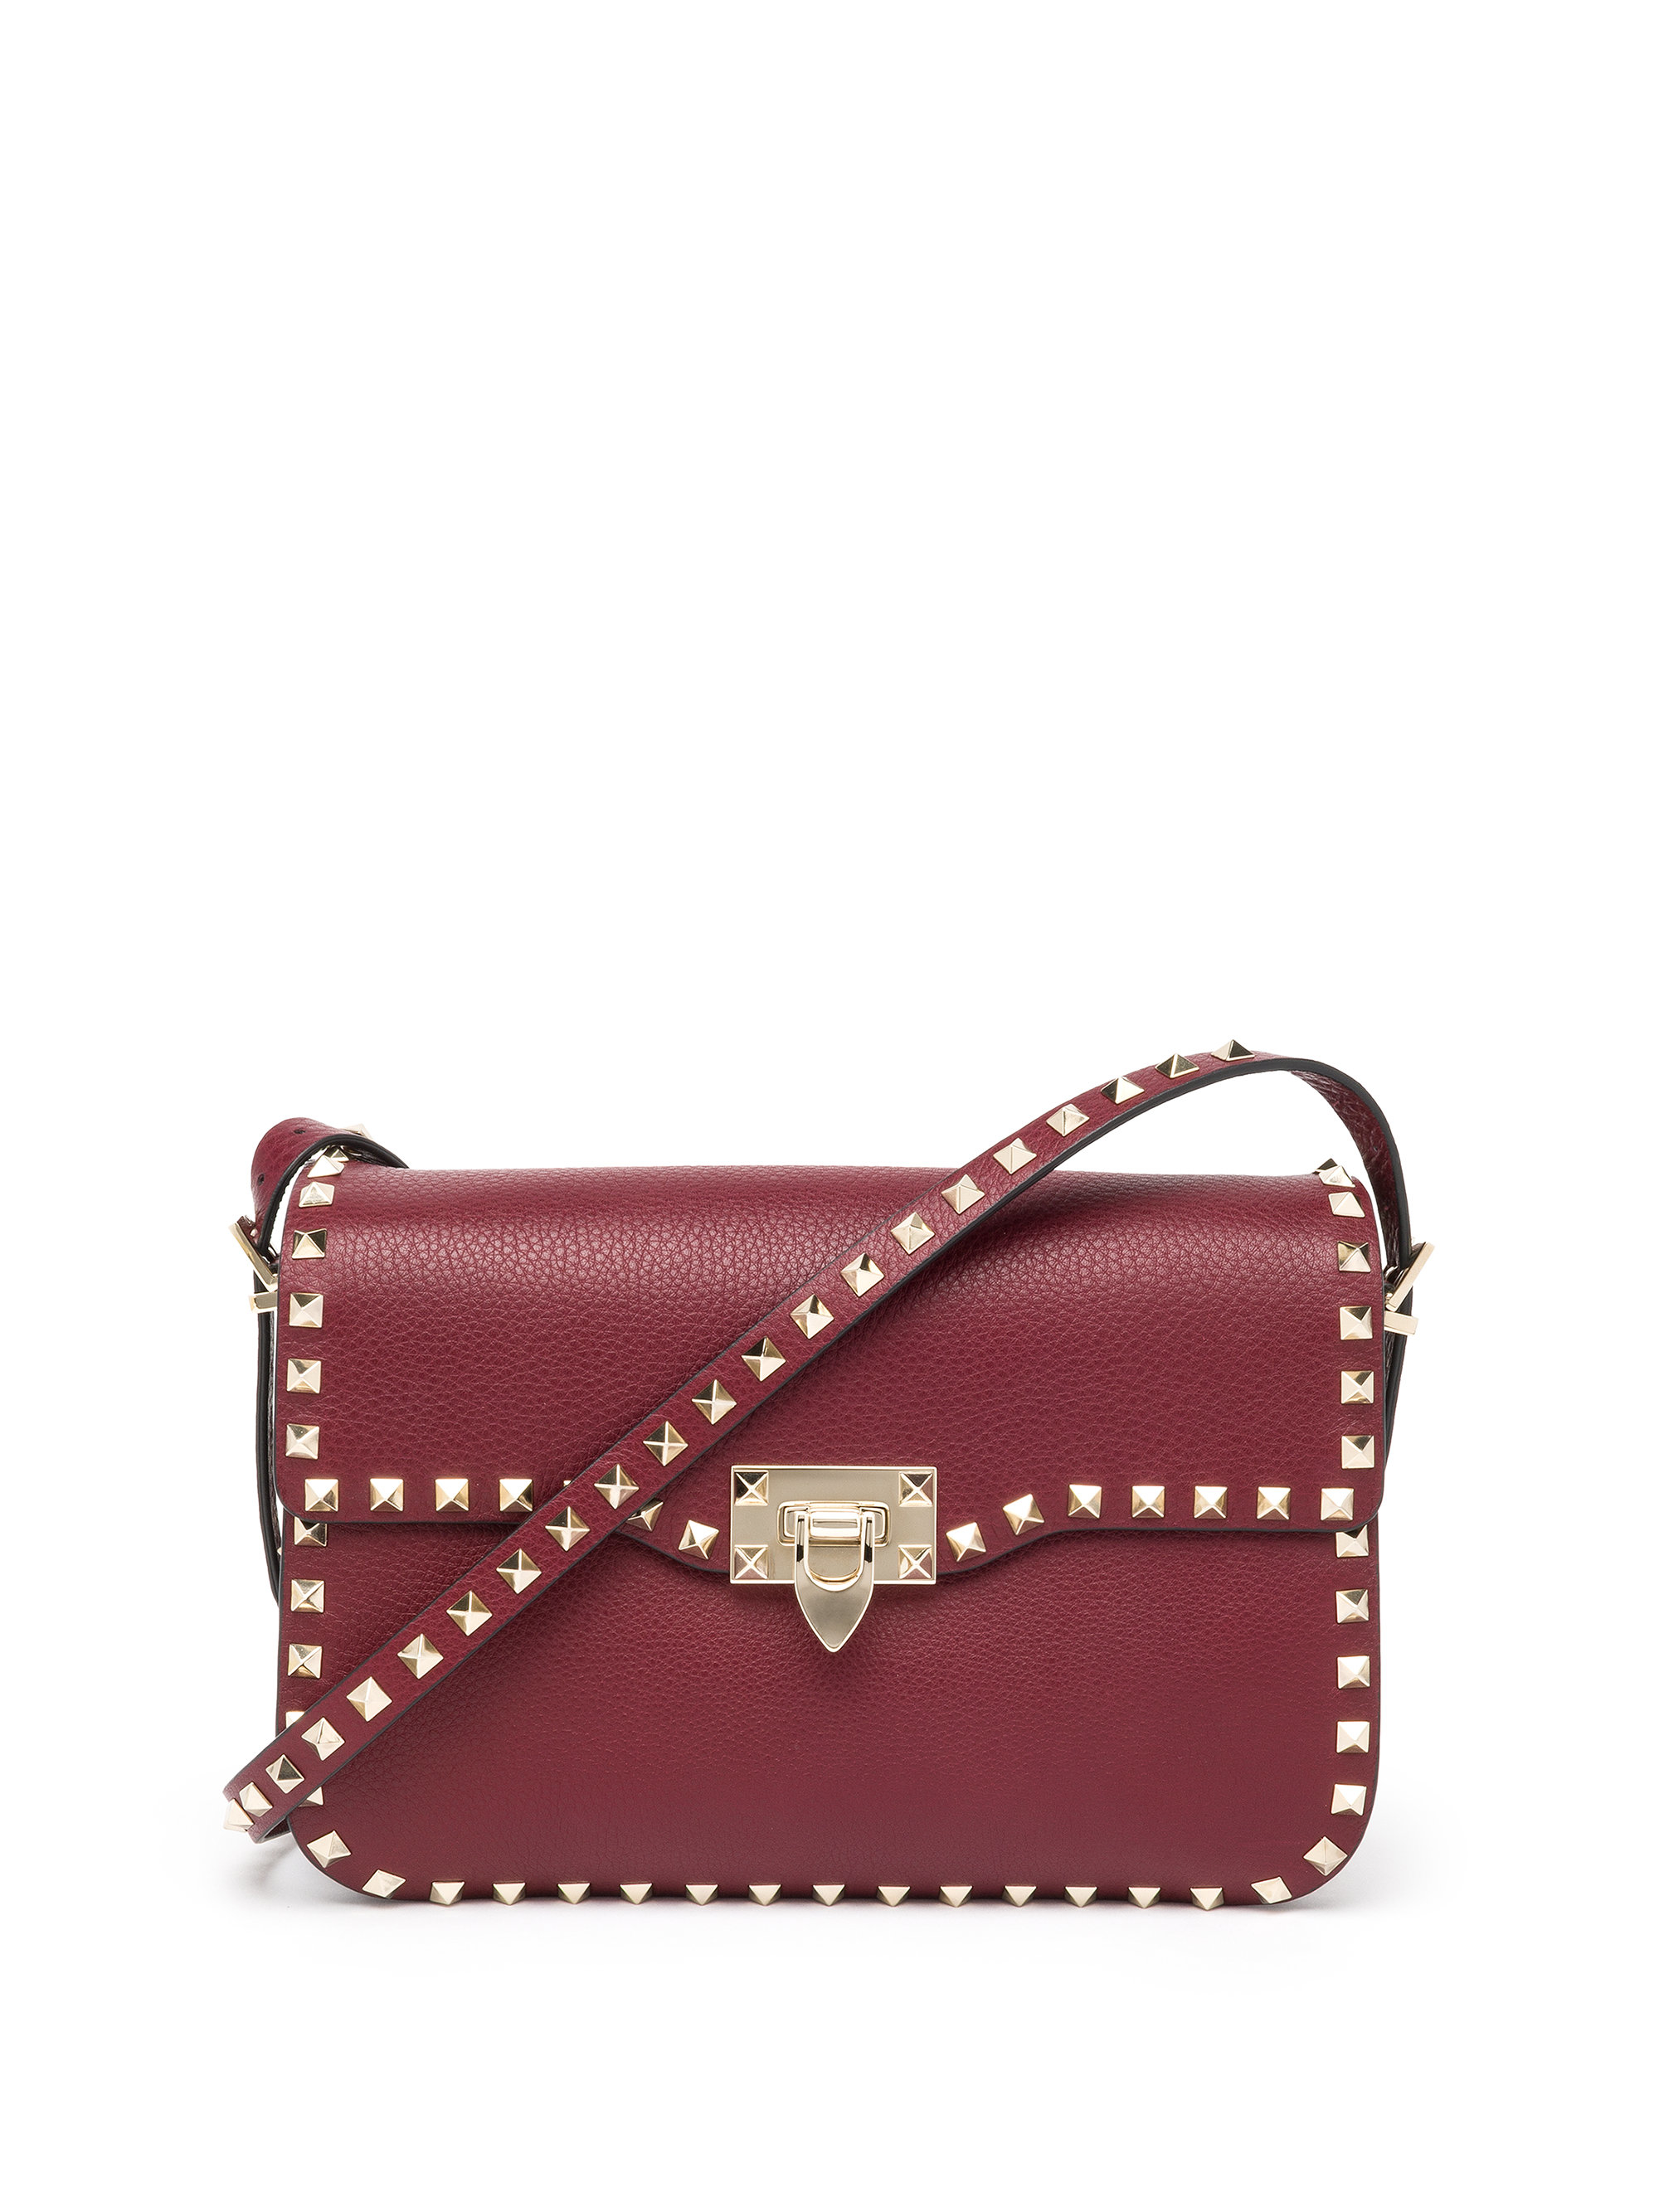 1c85d99251 Lyst Valentino Rockstud Leather Shoulder Bag In Purple